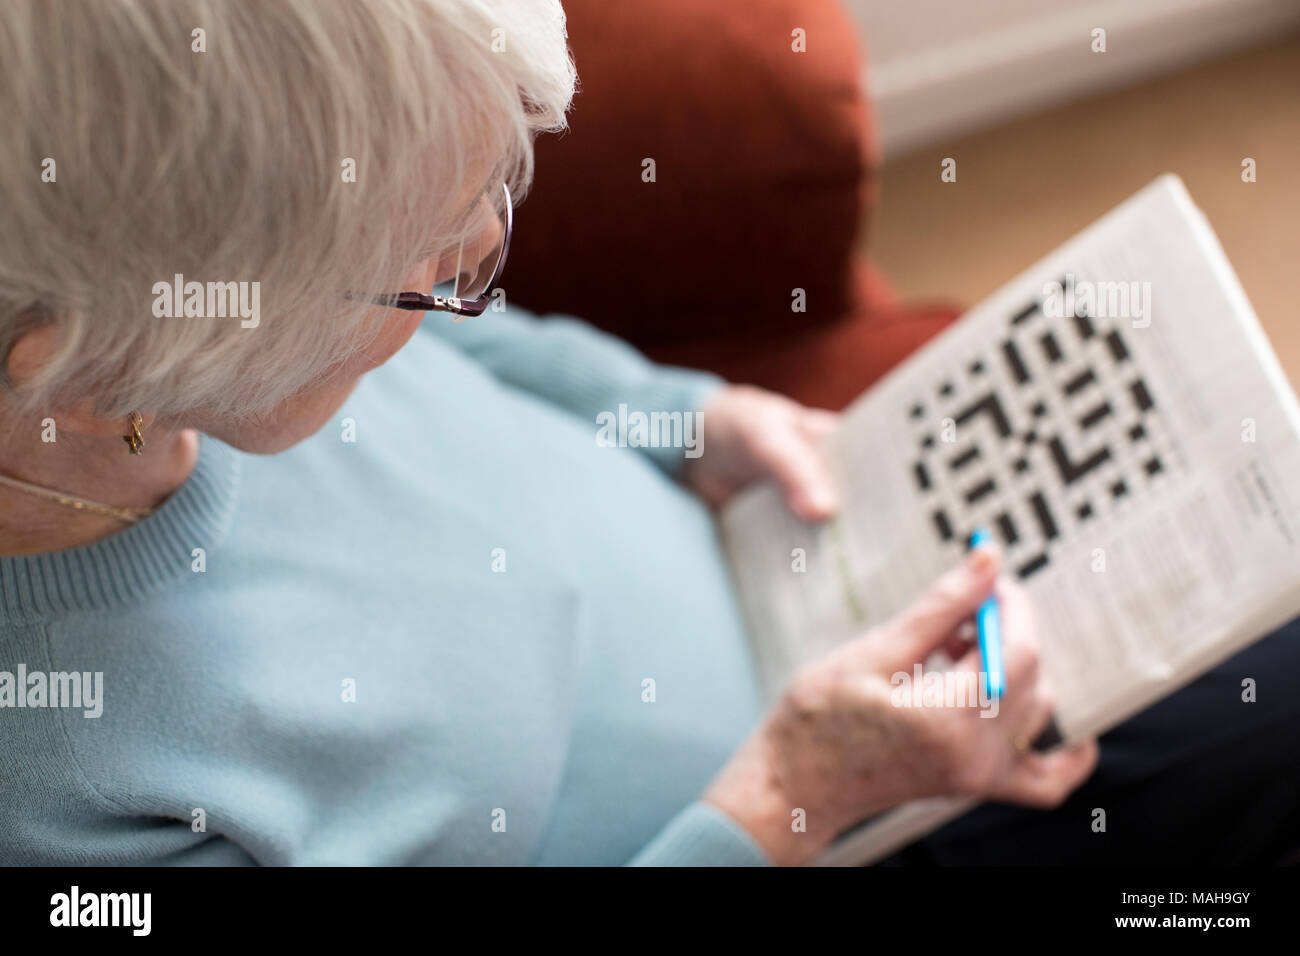 Senior Woman Doing Crossword Puzzle At Home - Stock Image